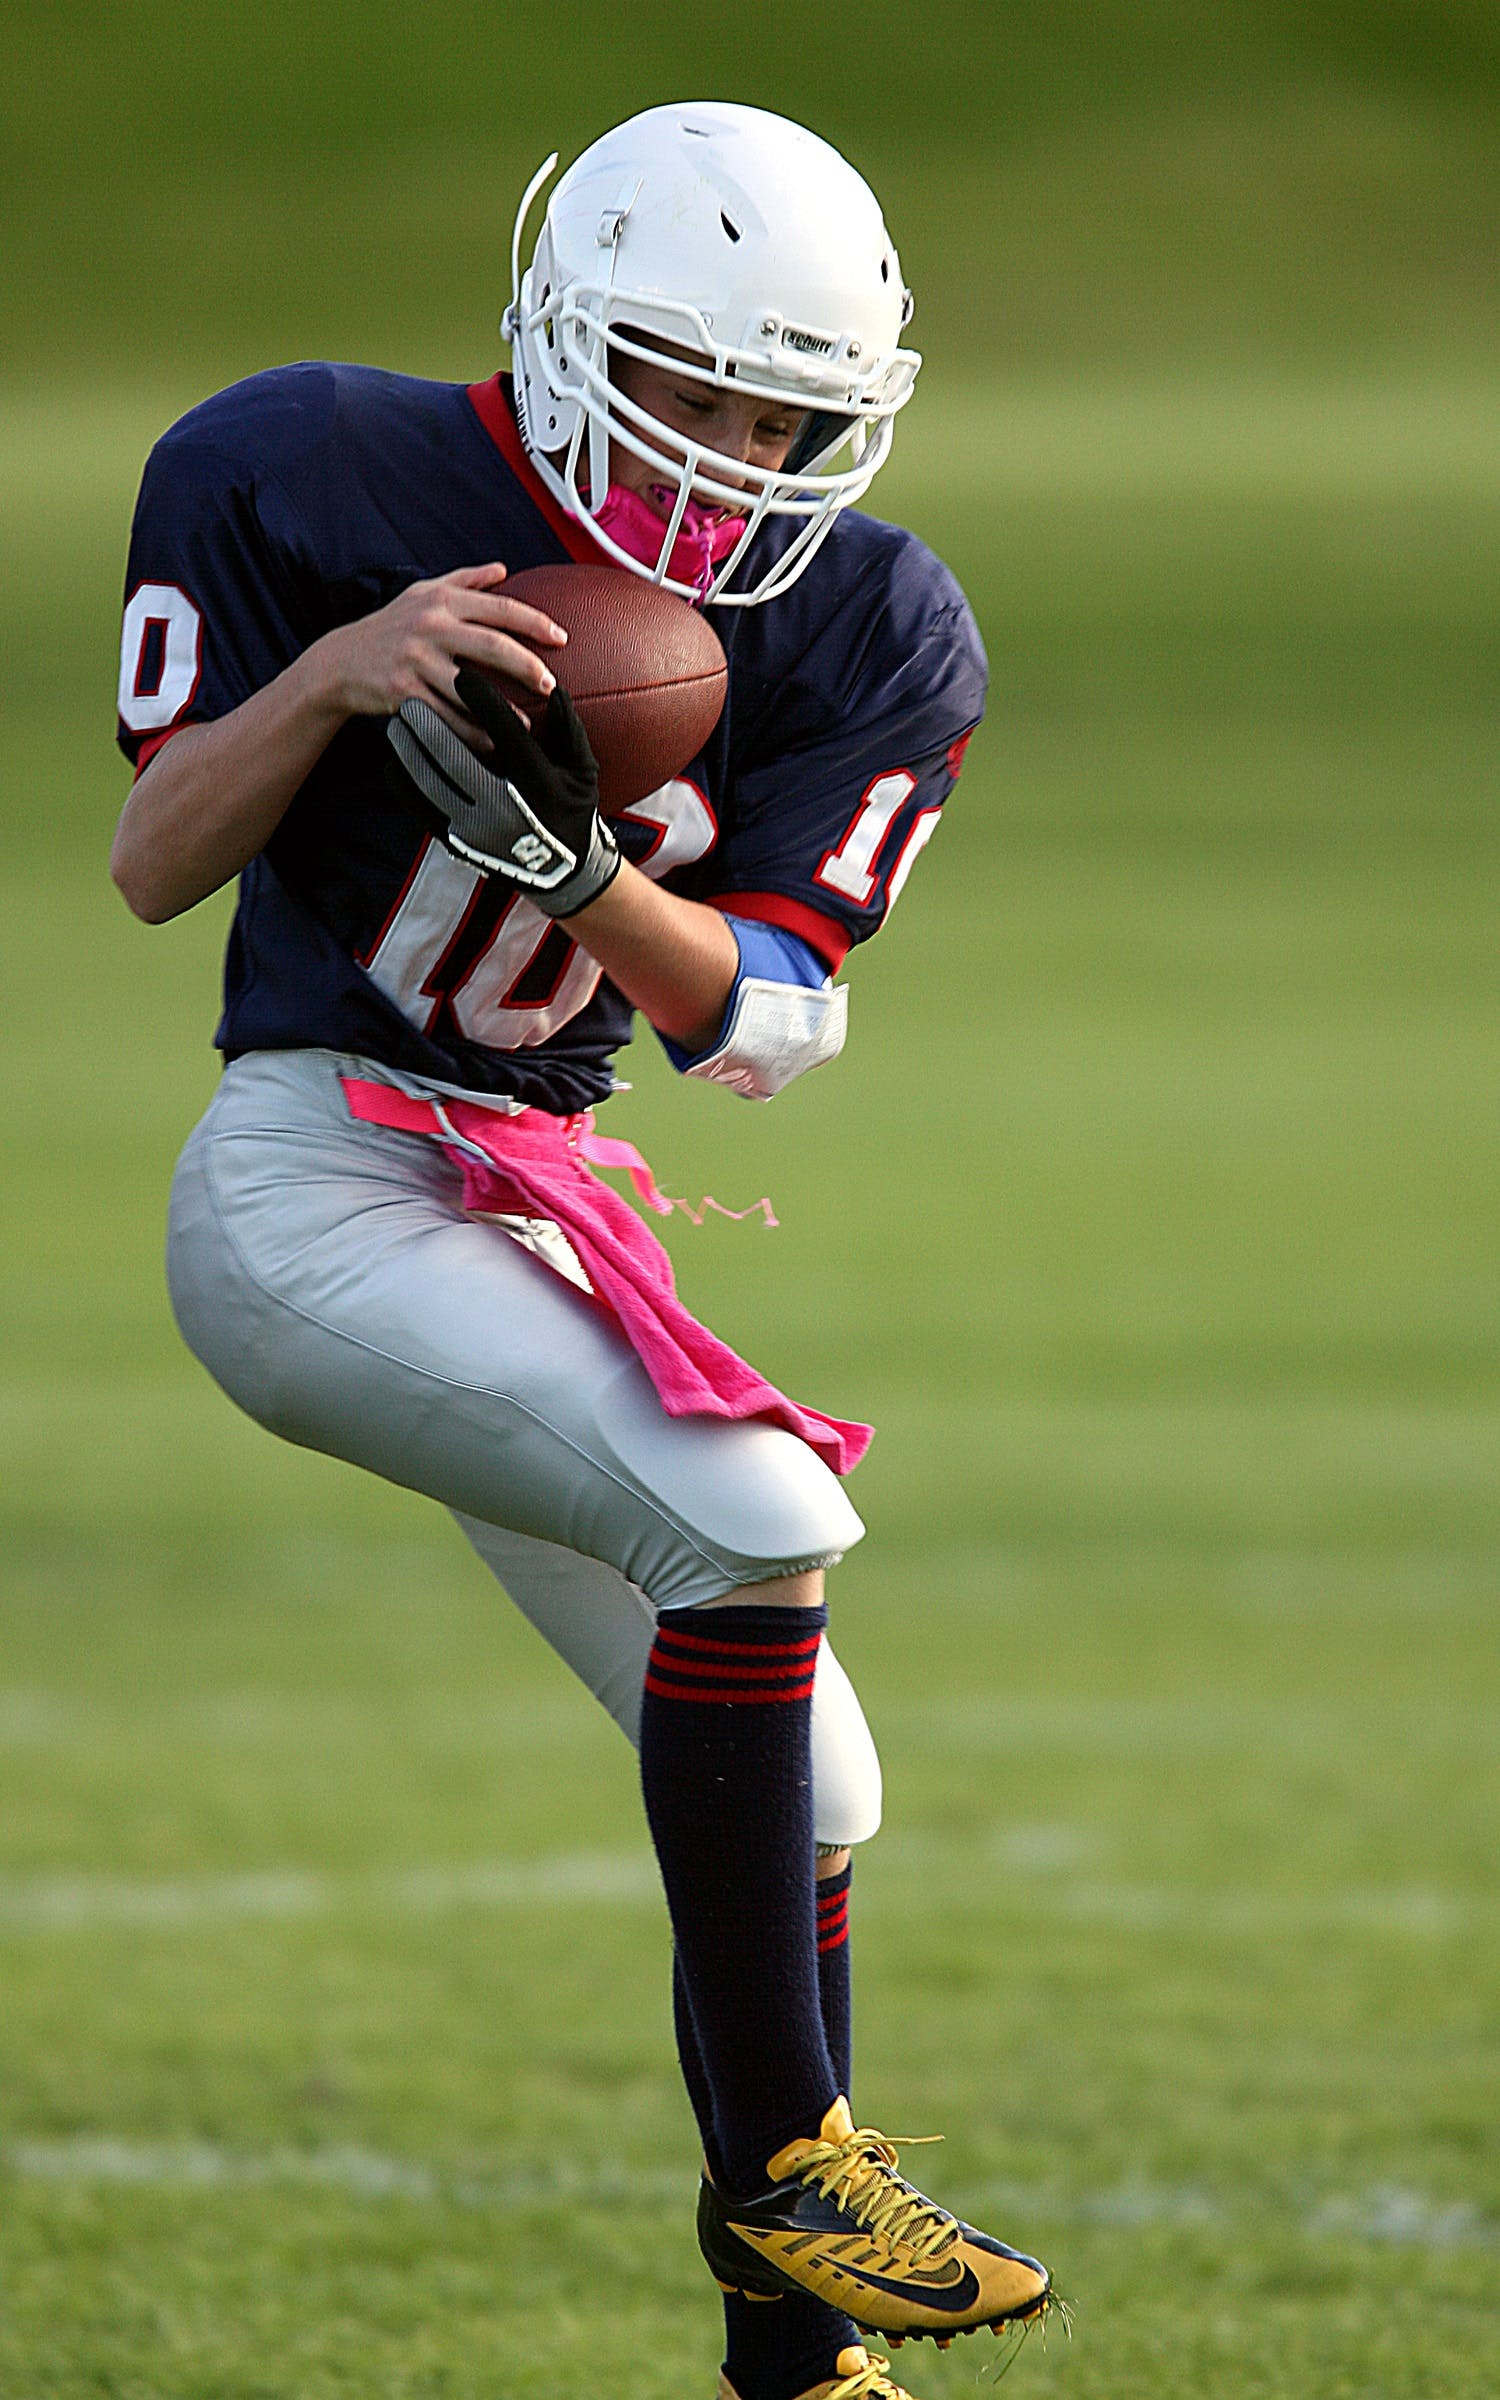 Kostenloses Stock Foto zu action, american football, american football-spieler, athlet